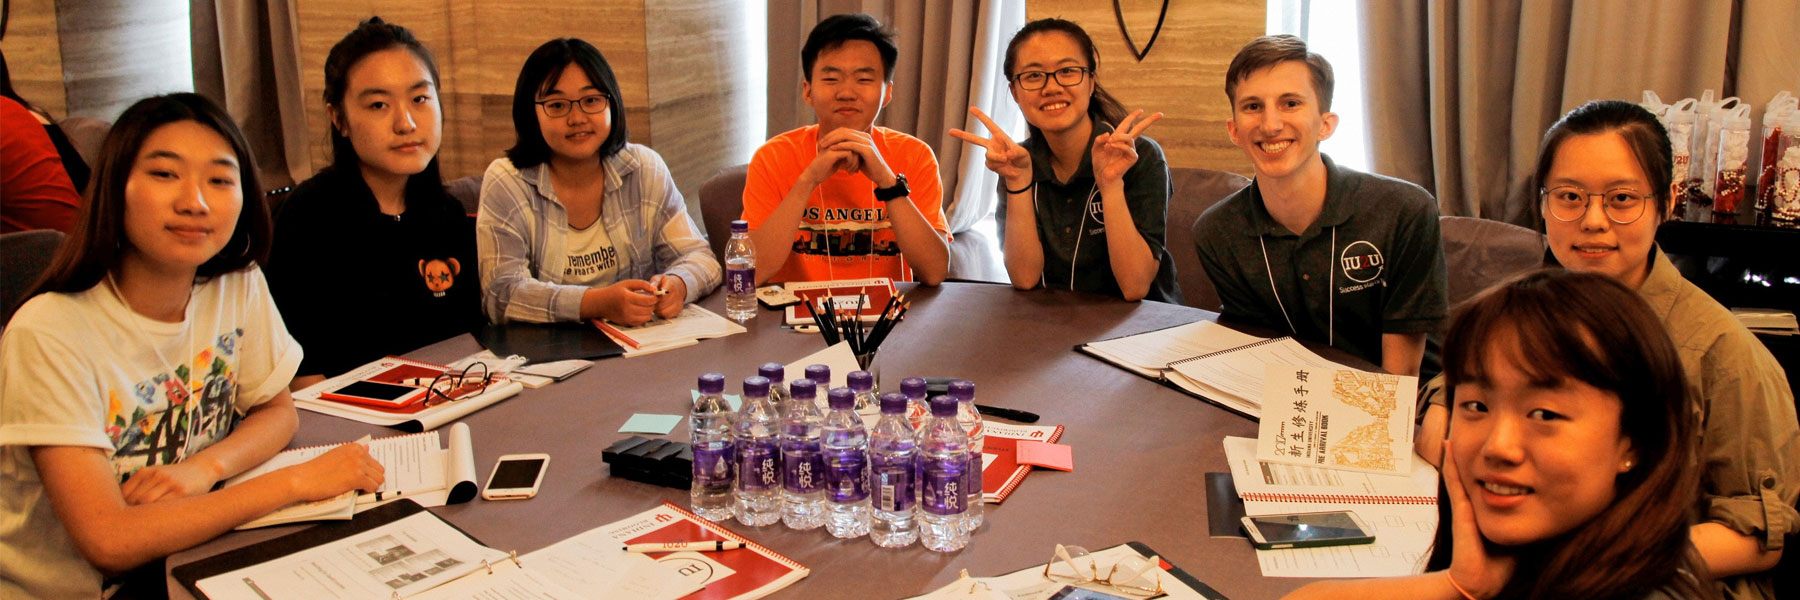 A group of IU2U orientation students from Beijing sit together at a table along with two IU2U orientation leaders